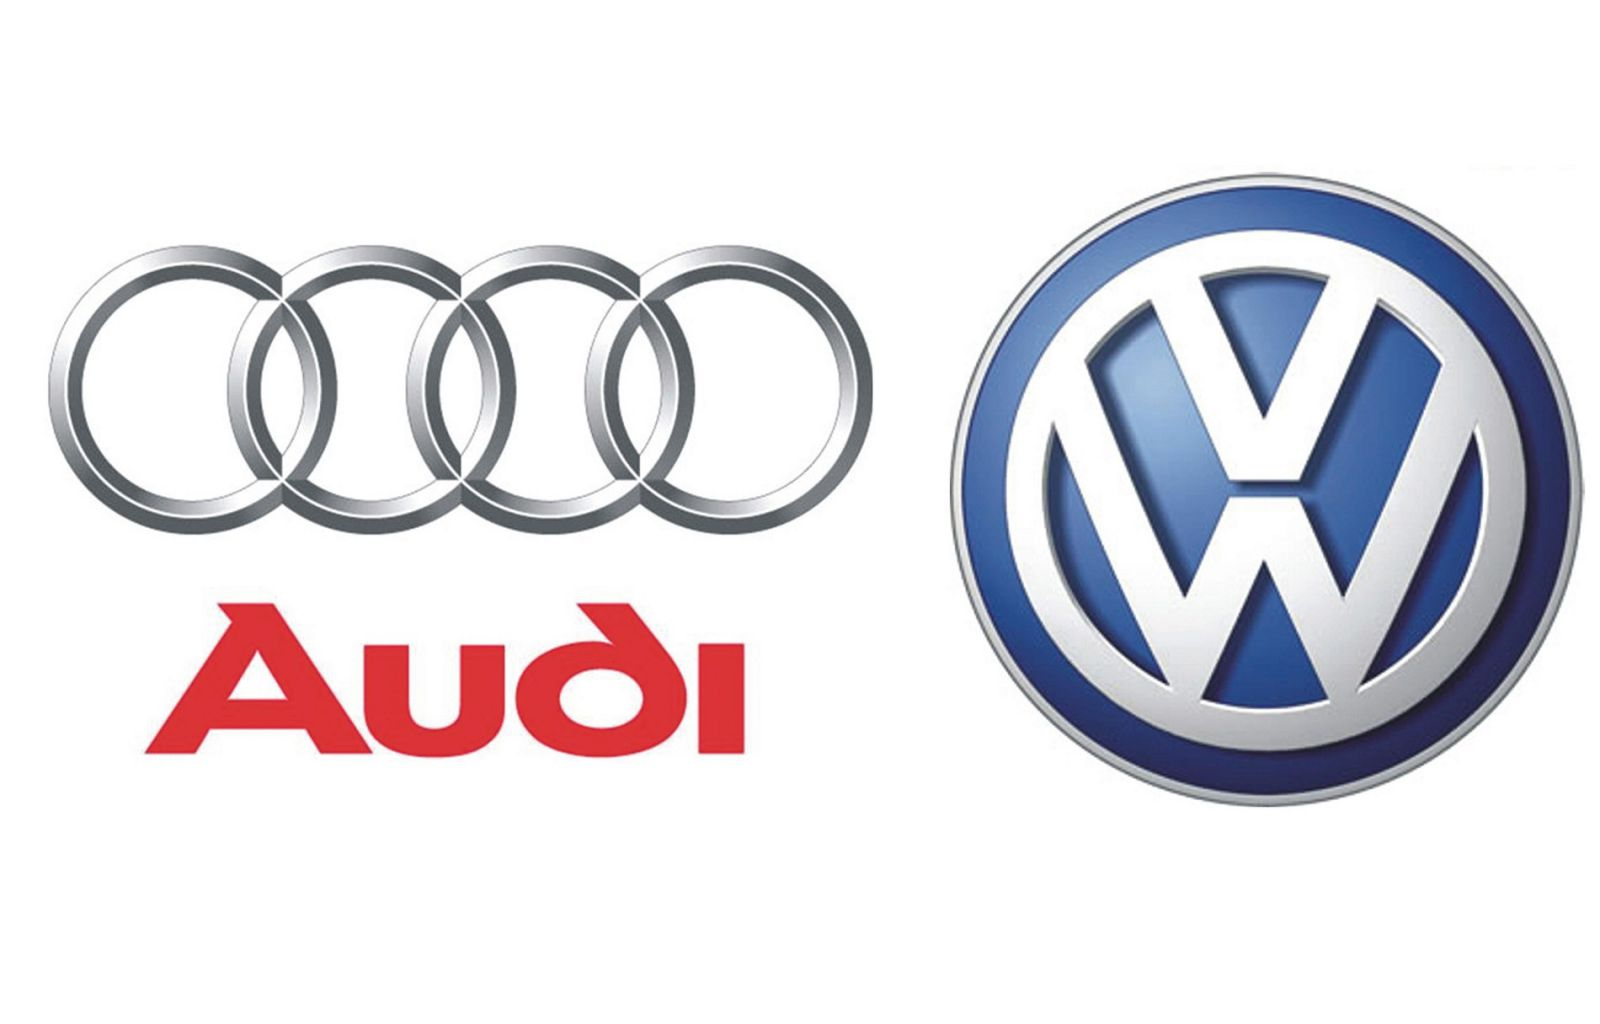 Colour a car - A Wide Range Of Volkswagen Audi Colours Please Note If The Colour You Require Isn T Listed You Can Purchase Mixed Colour At The Top Of The Page